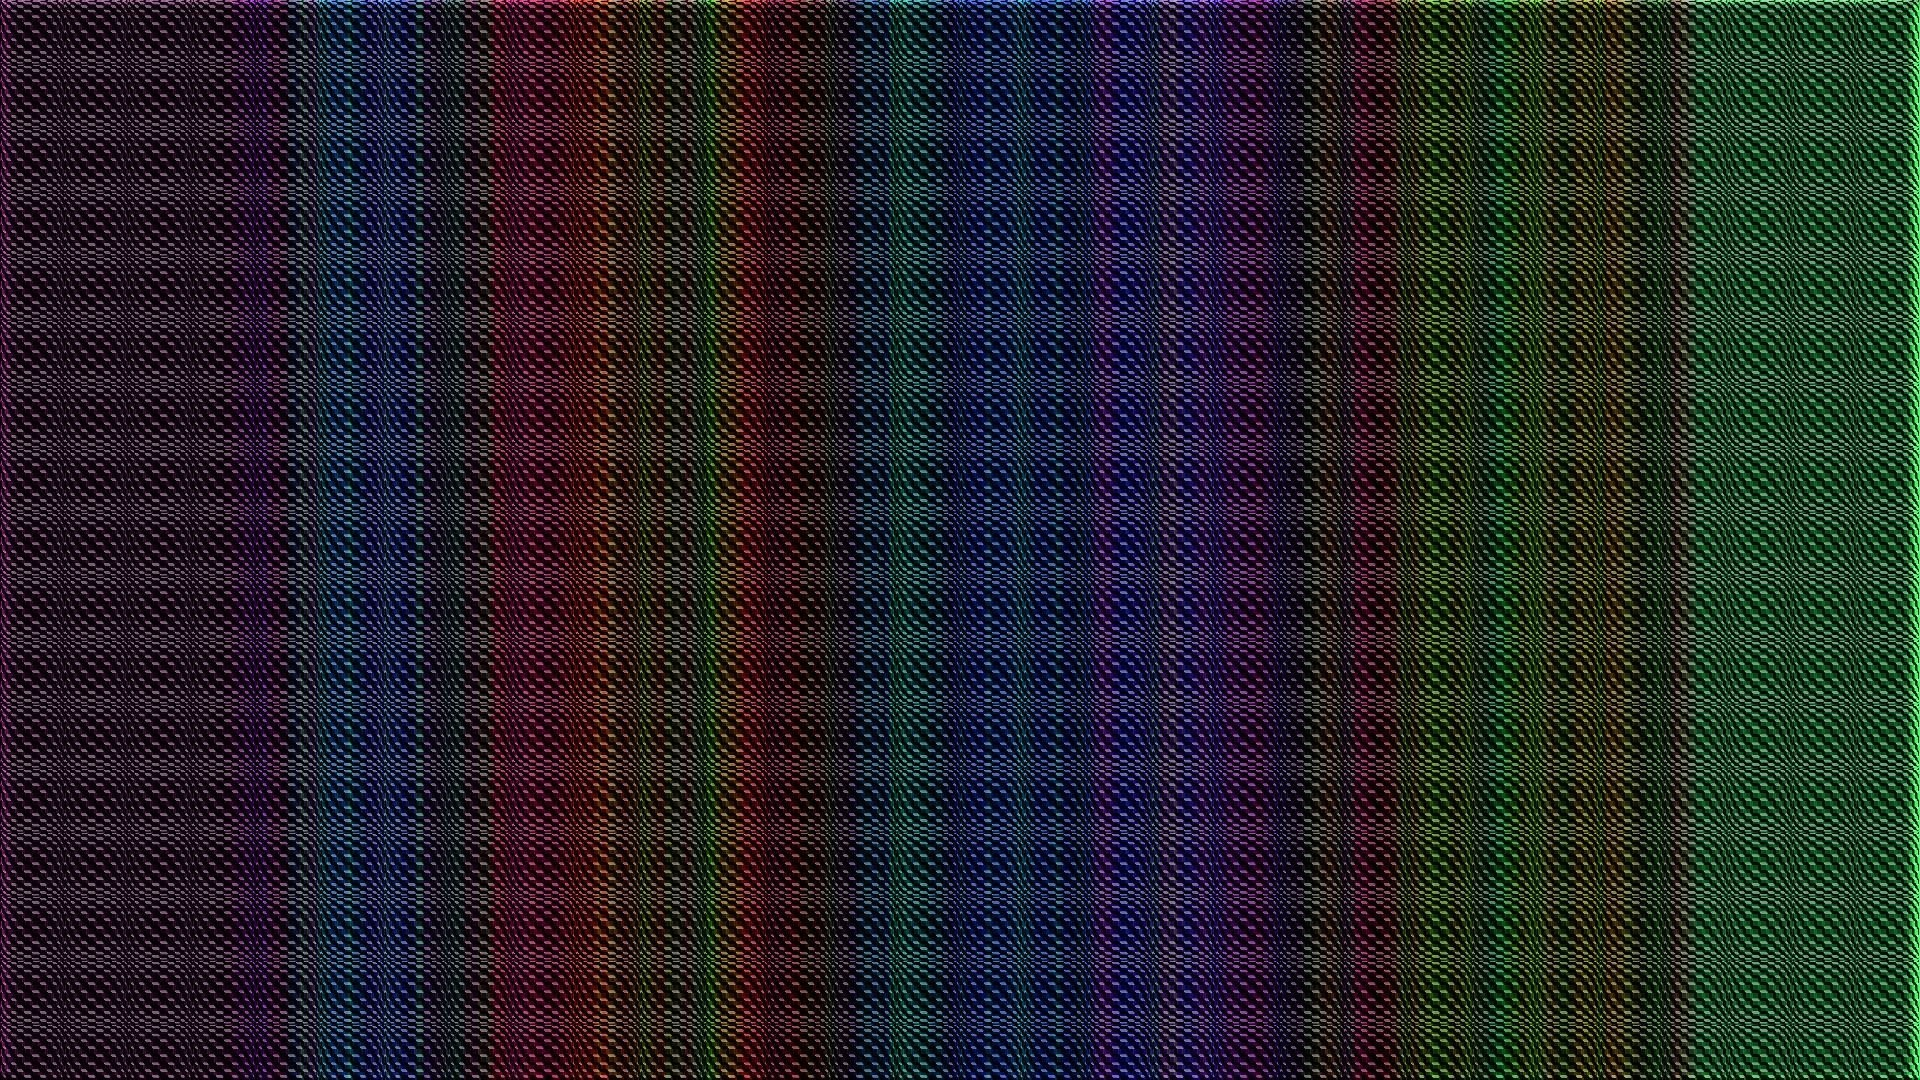 1920x1080 Rainbow Colored Squares